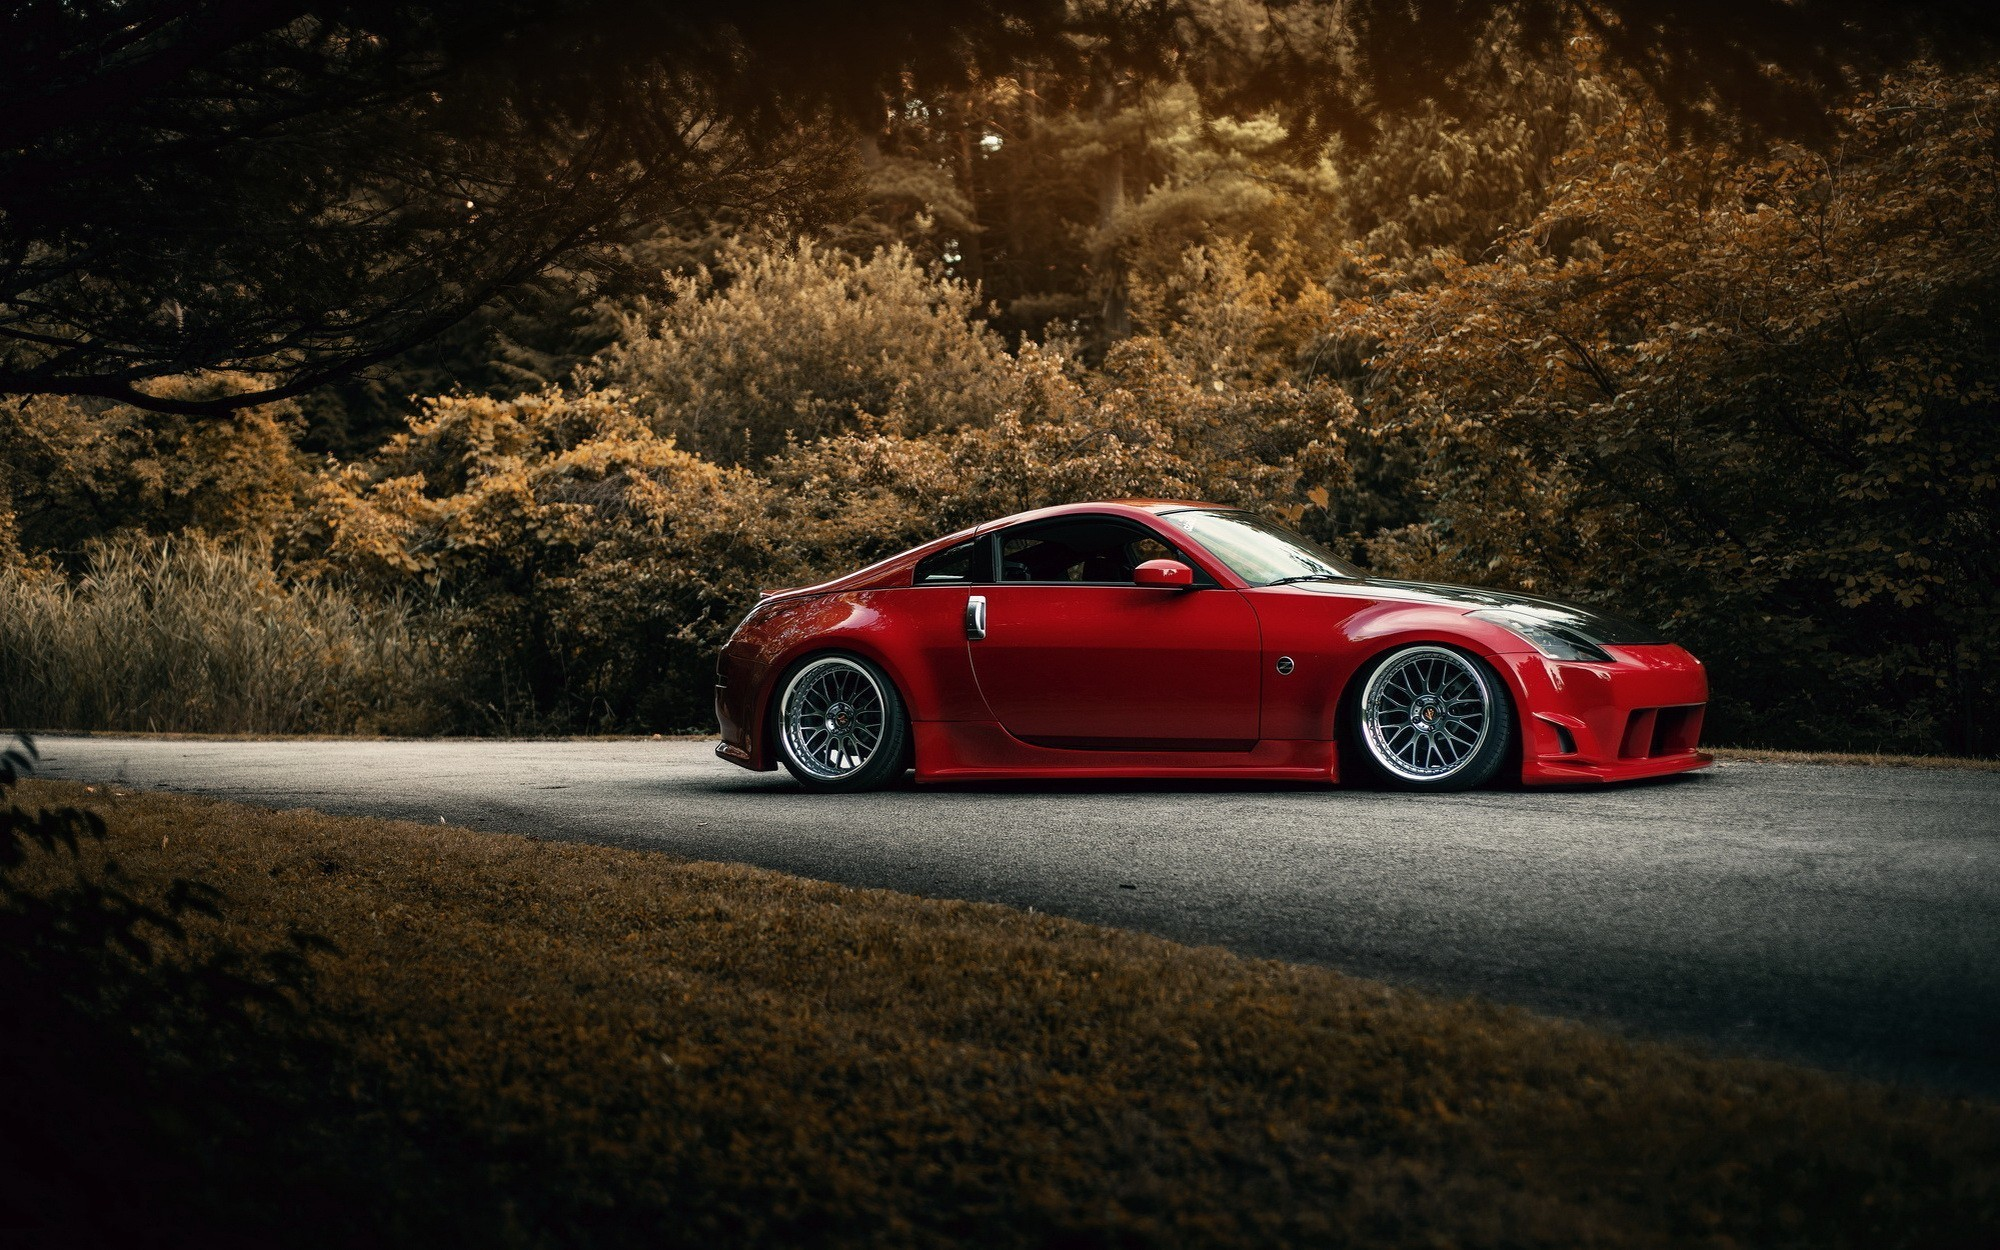 2000x1250 car, JDM, Nissan, Nissan 350Z Wallpapers HD / Desktop and Mobile Backgrounds